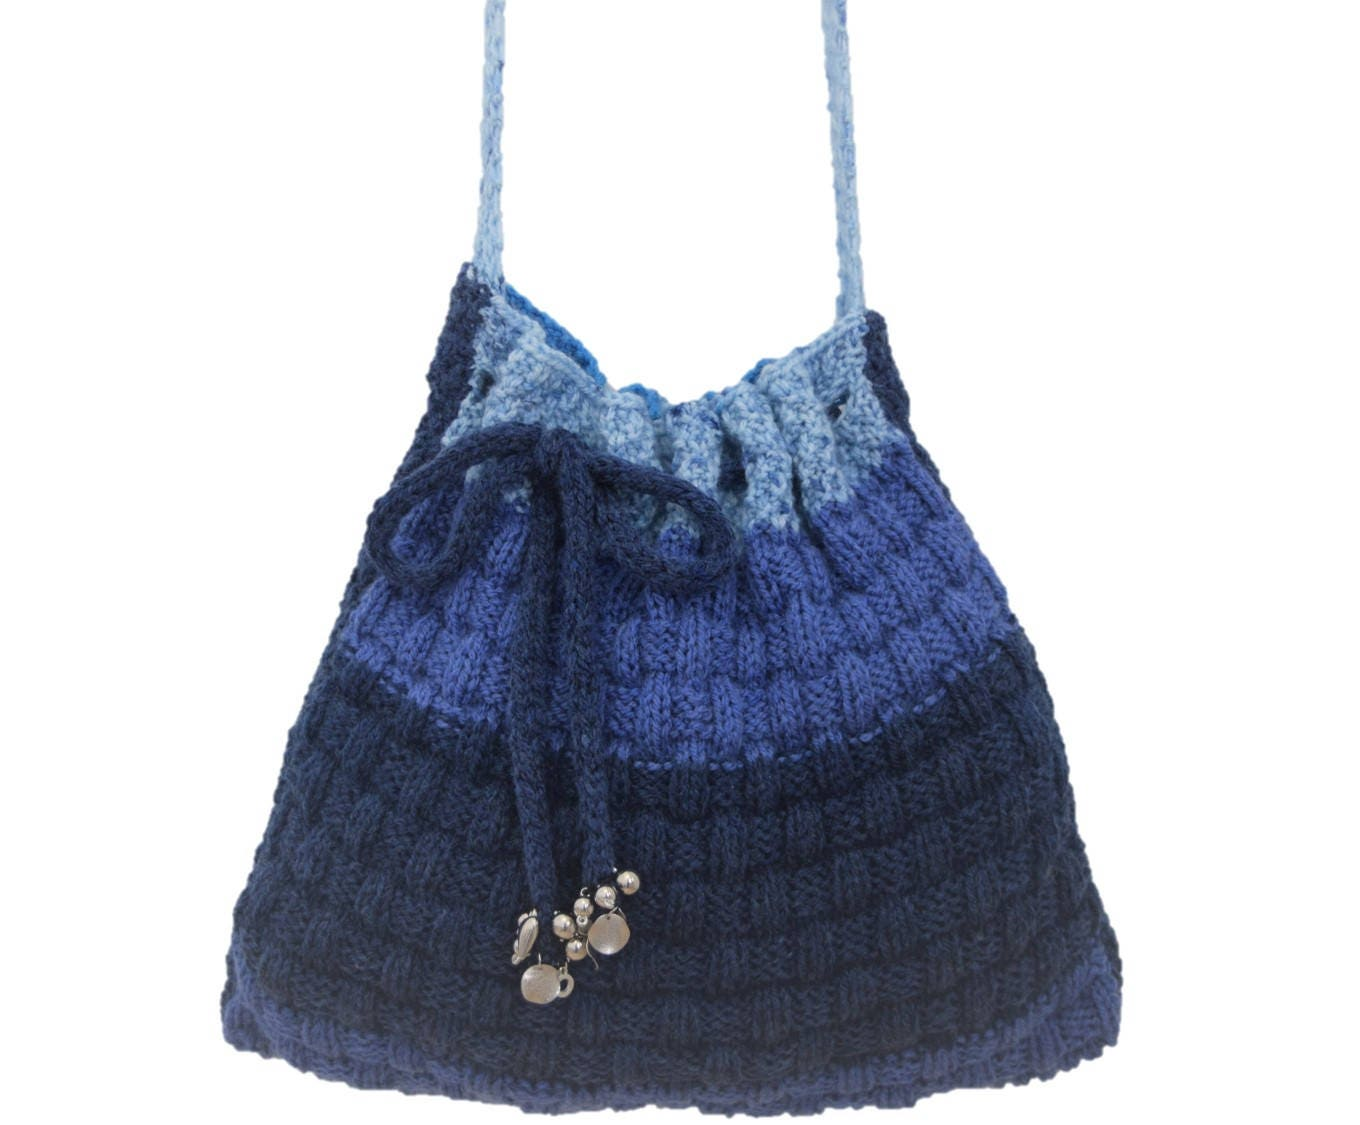 Knitting Pattern for a shoulder bag, Knitting Bag pattern, Handmade ...